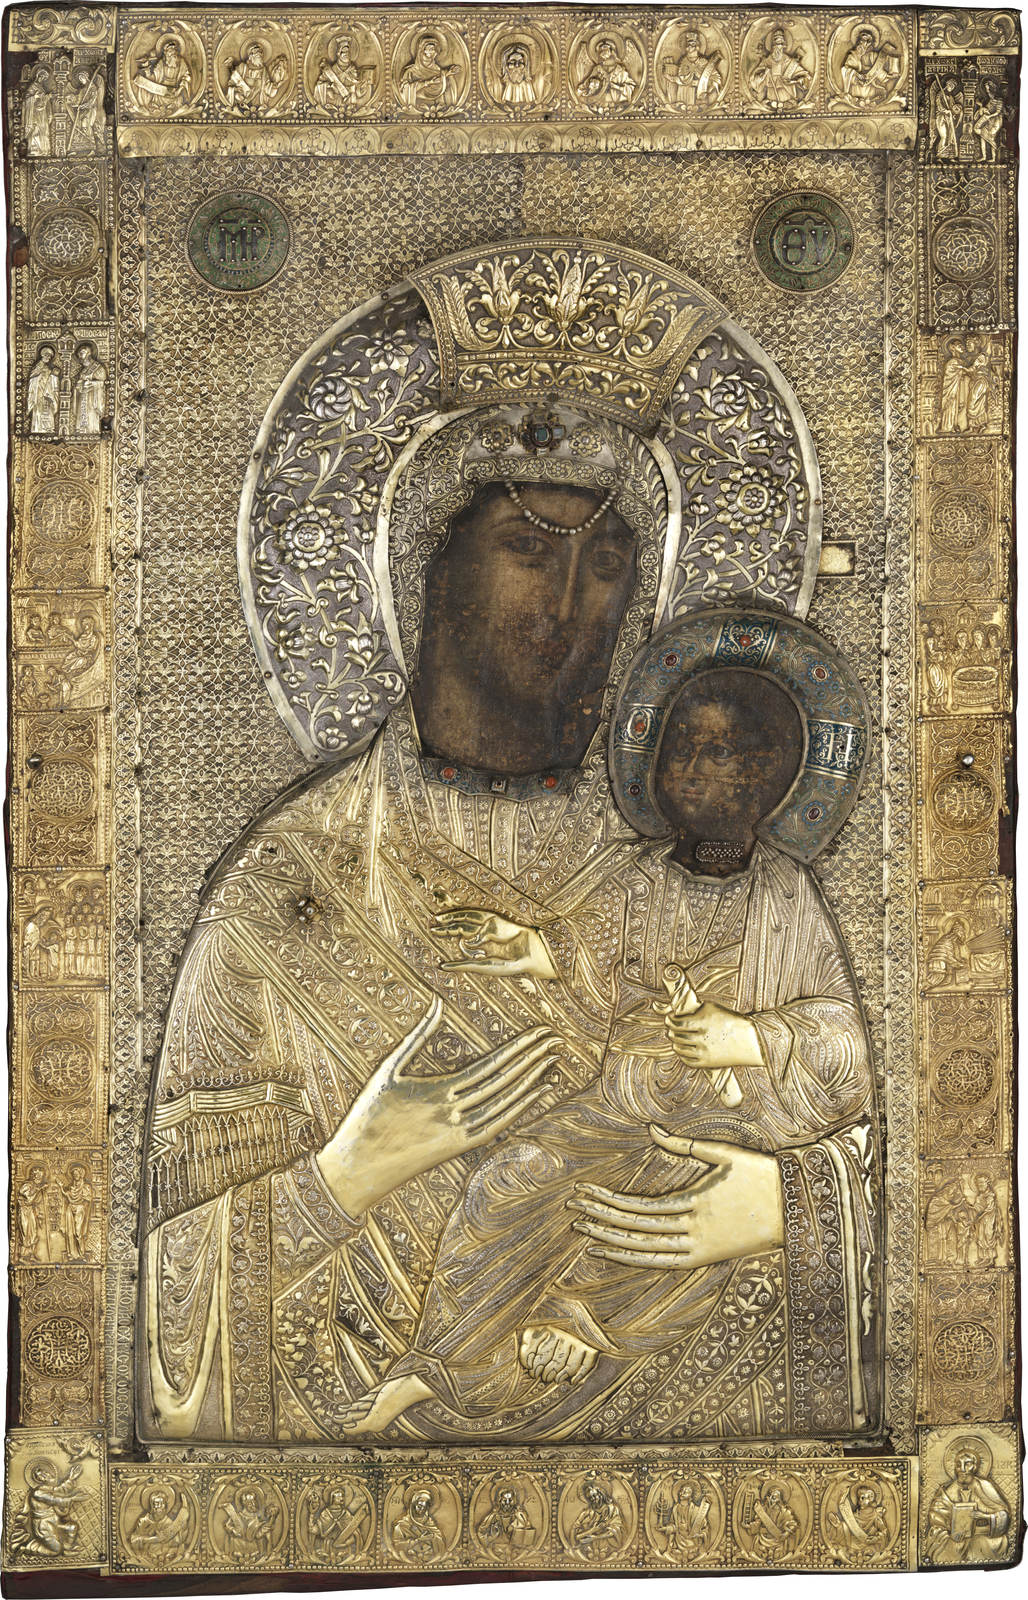 Our Lady Vimatarissa or Ktitorissa